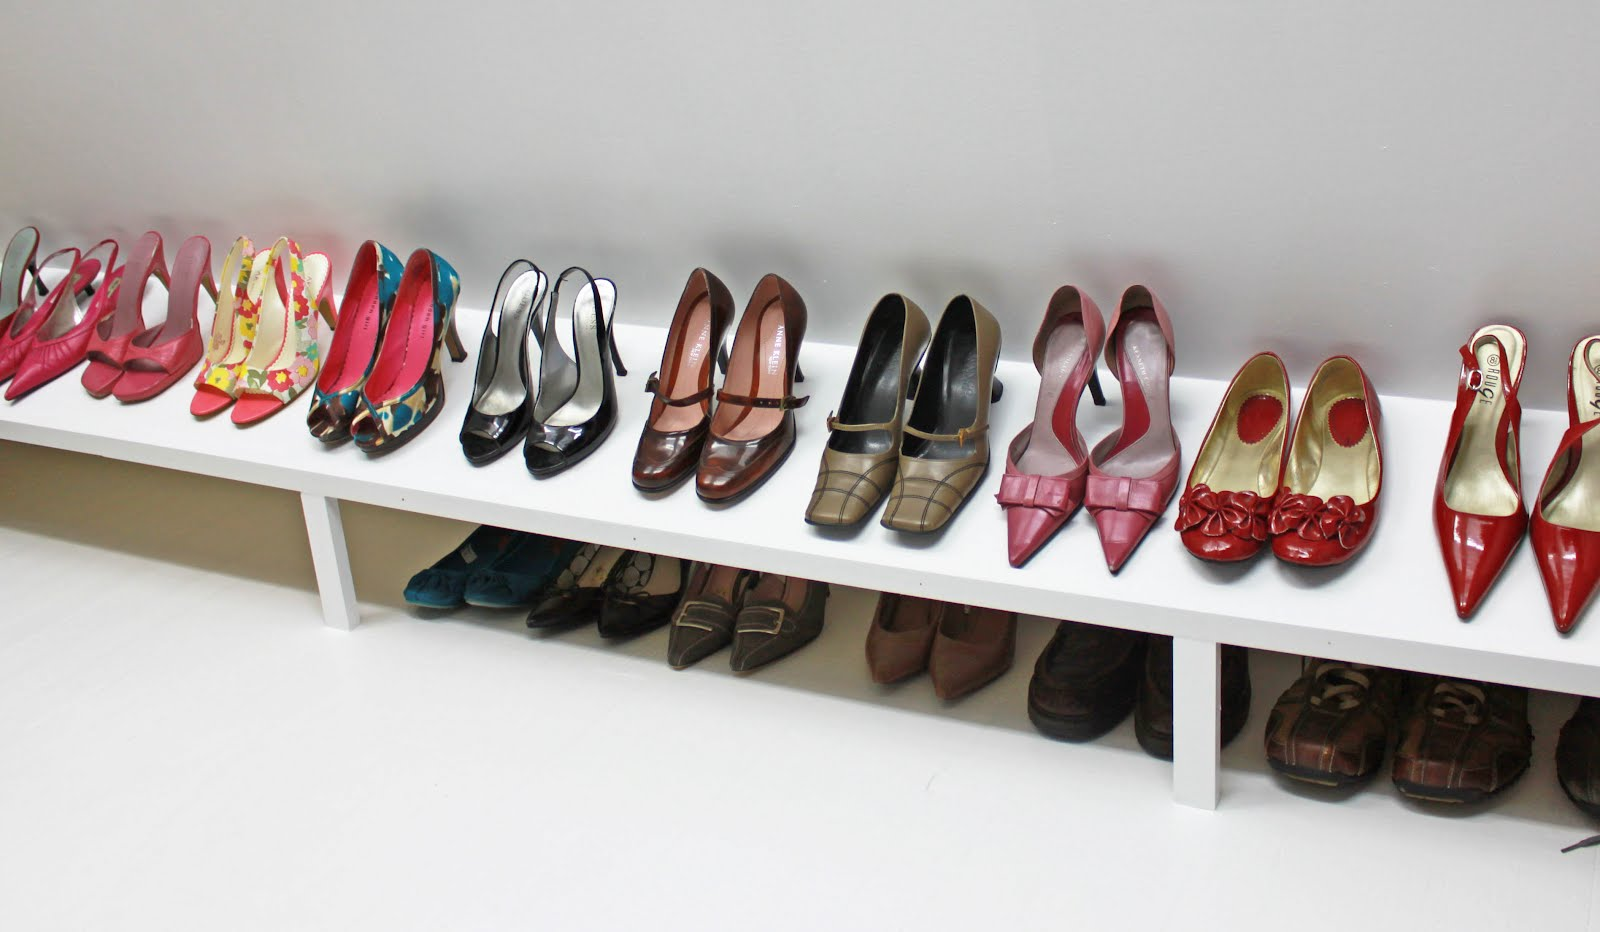 Personable Closet Shoe Rack Dimensions Roselawnlutheran - Ideas for shoe storage in closet